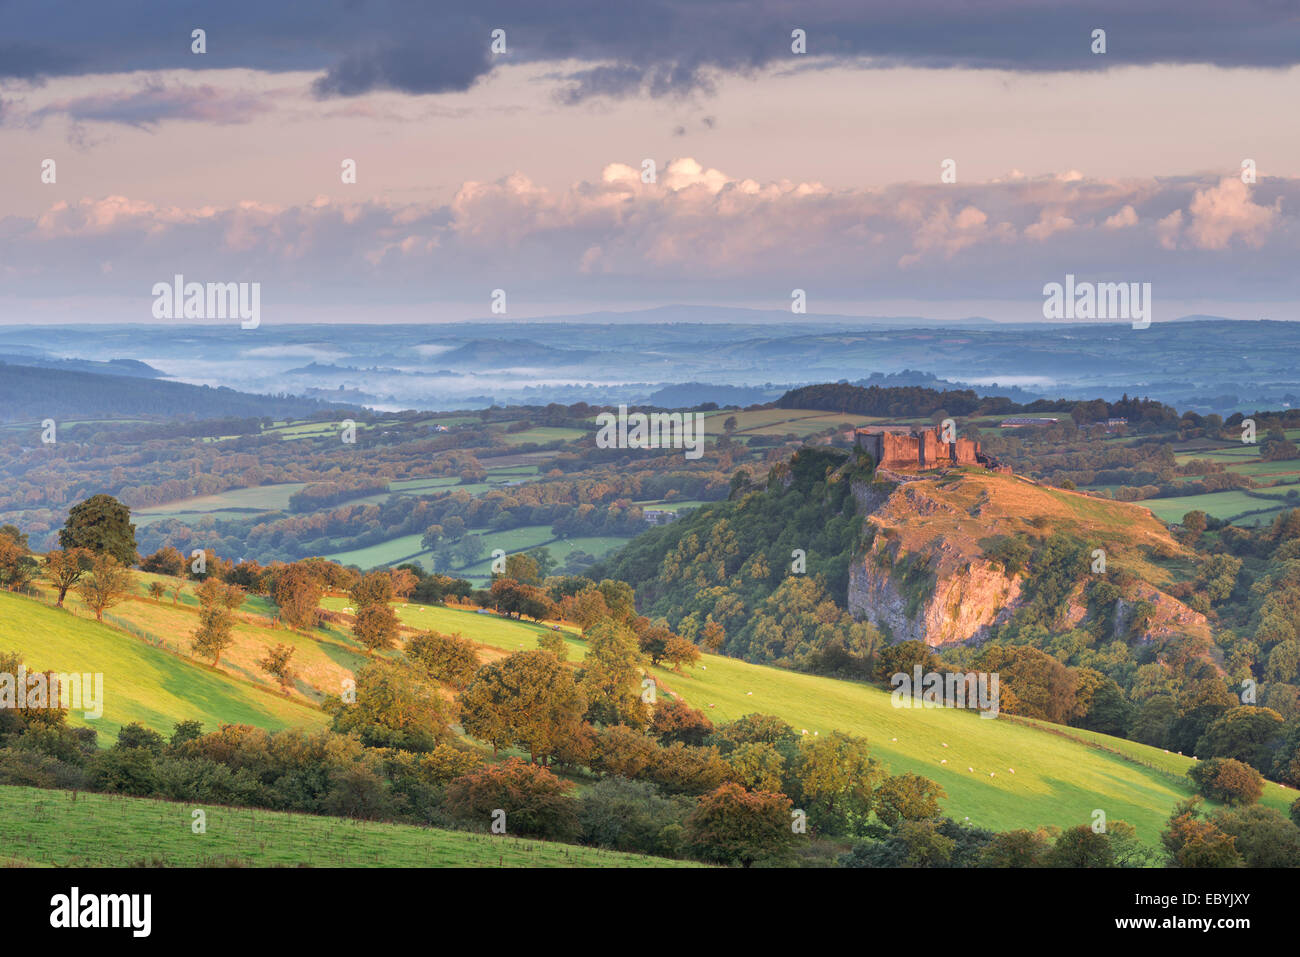 Carreg Cennen Castle in the Brecon Beacons, Carmarthenshire, Wales. Summer (August) 2014. - Stock Image